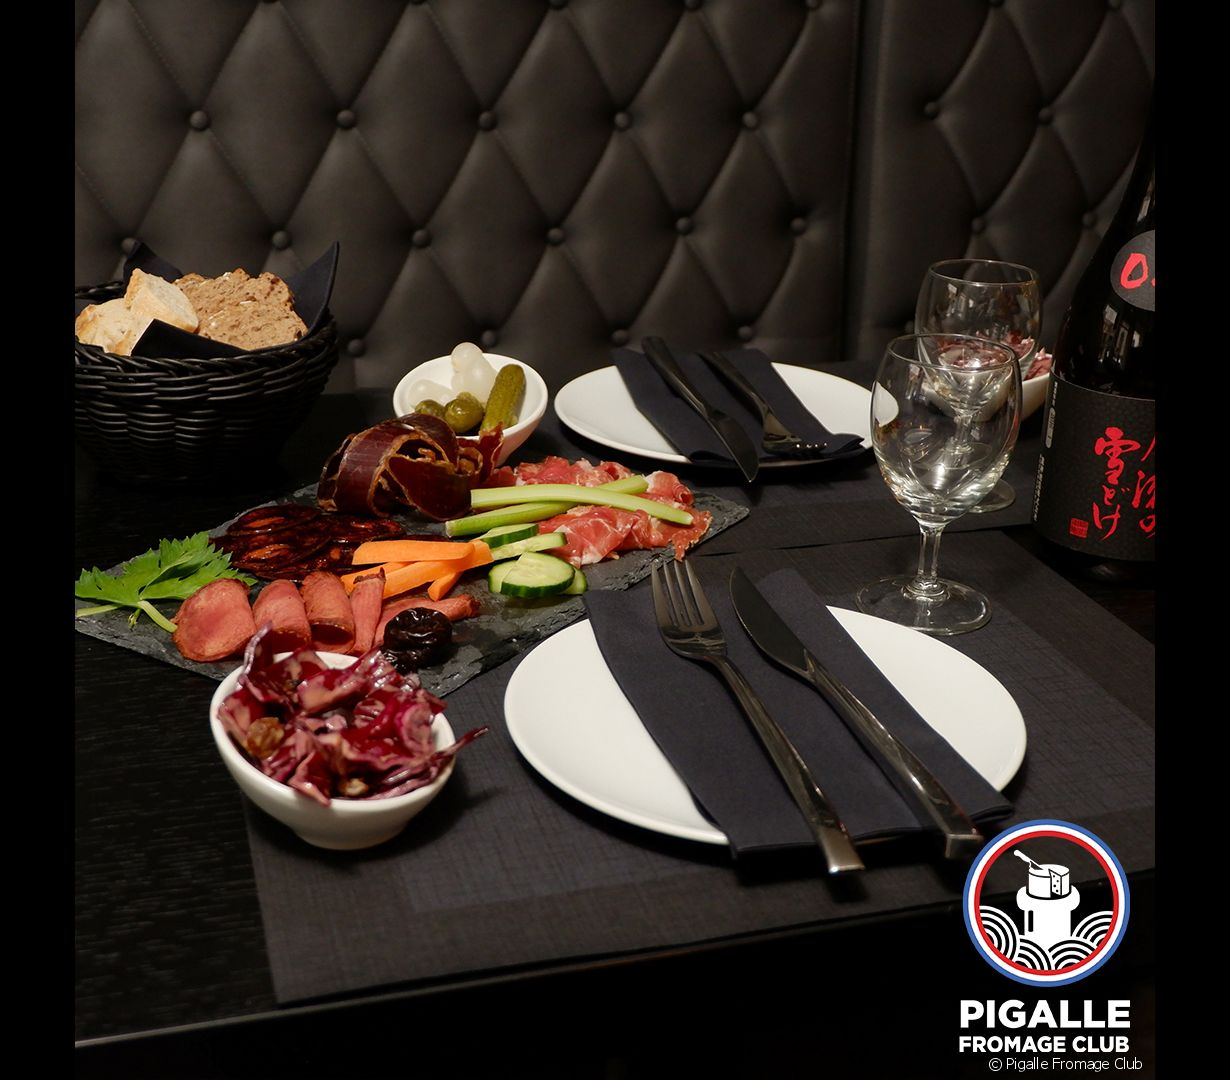 Pigalle Fromage Club, 35 Rue Jean-Baptiste Pigalle, 75009 Paris - Photo 5